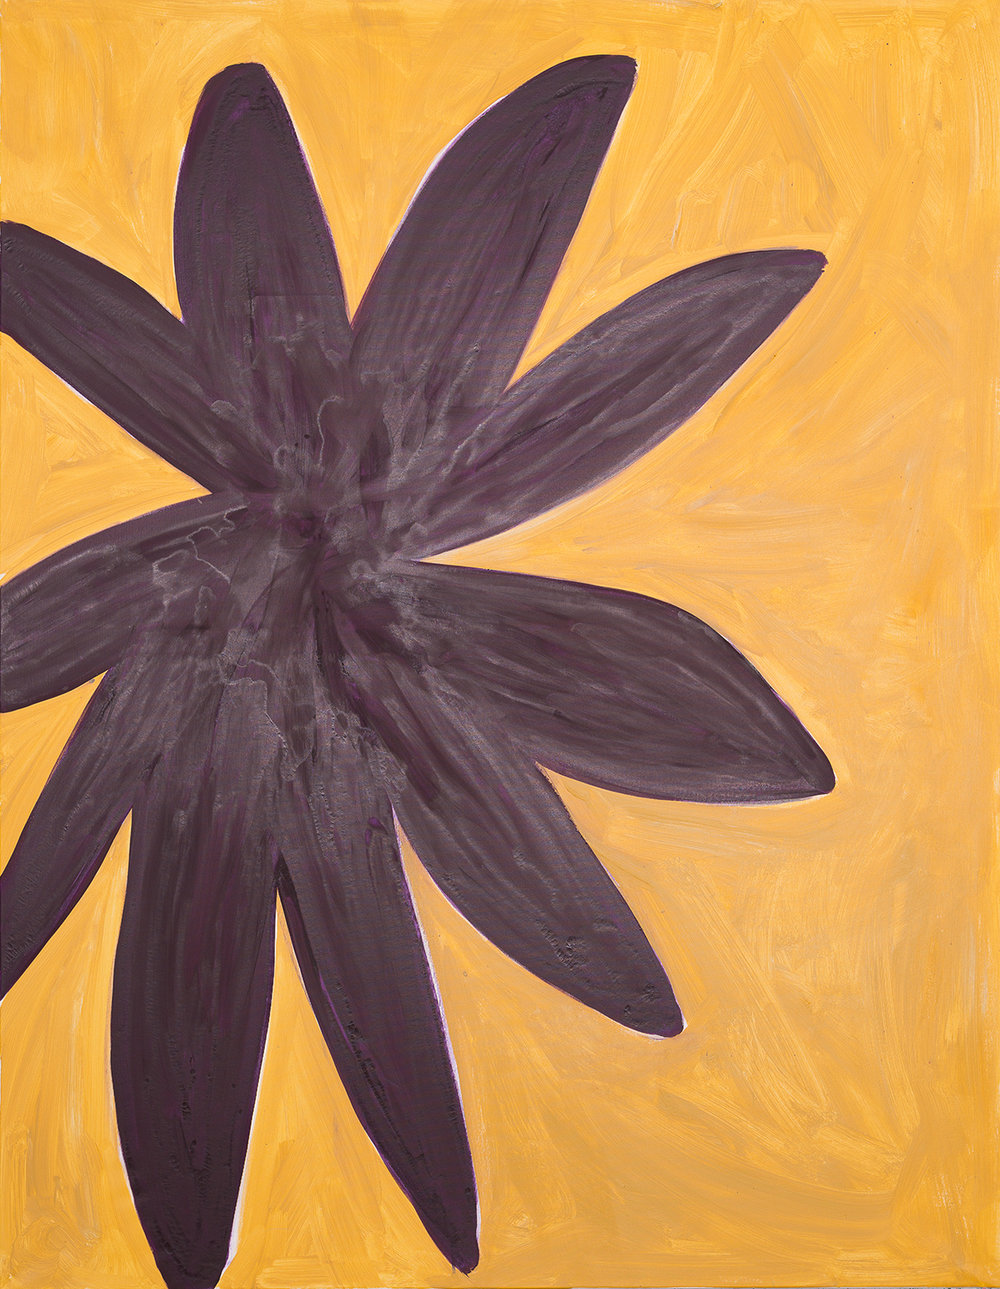 flower, dark violett, beige, 2014